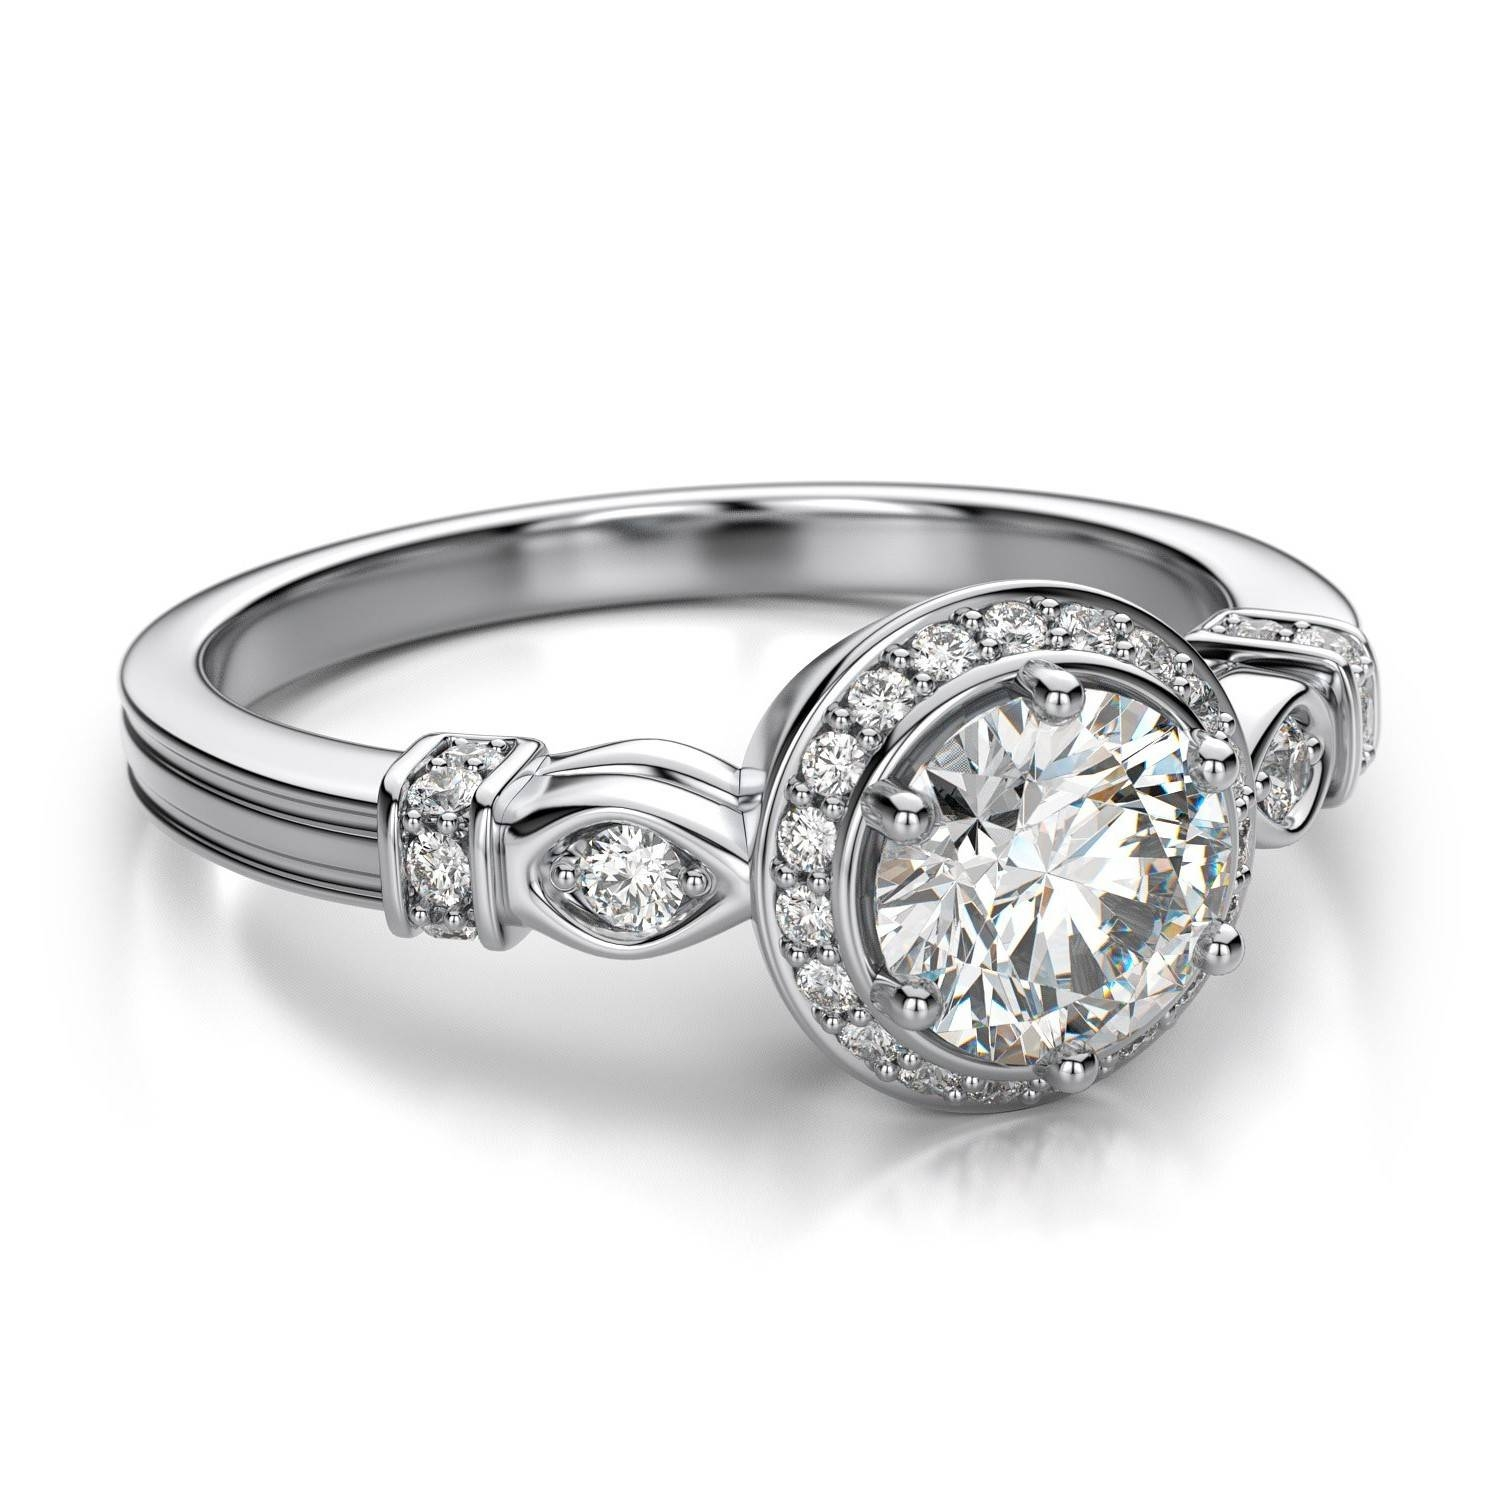 traditional engagement rings untraditional nontraditional fresh of weddingbee wedding non